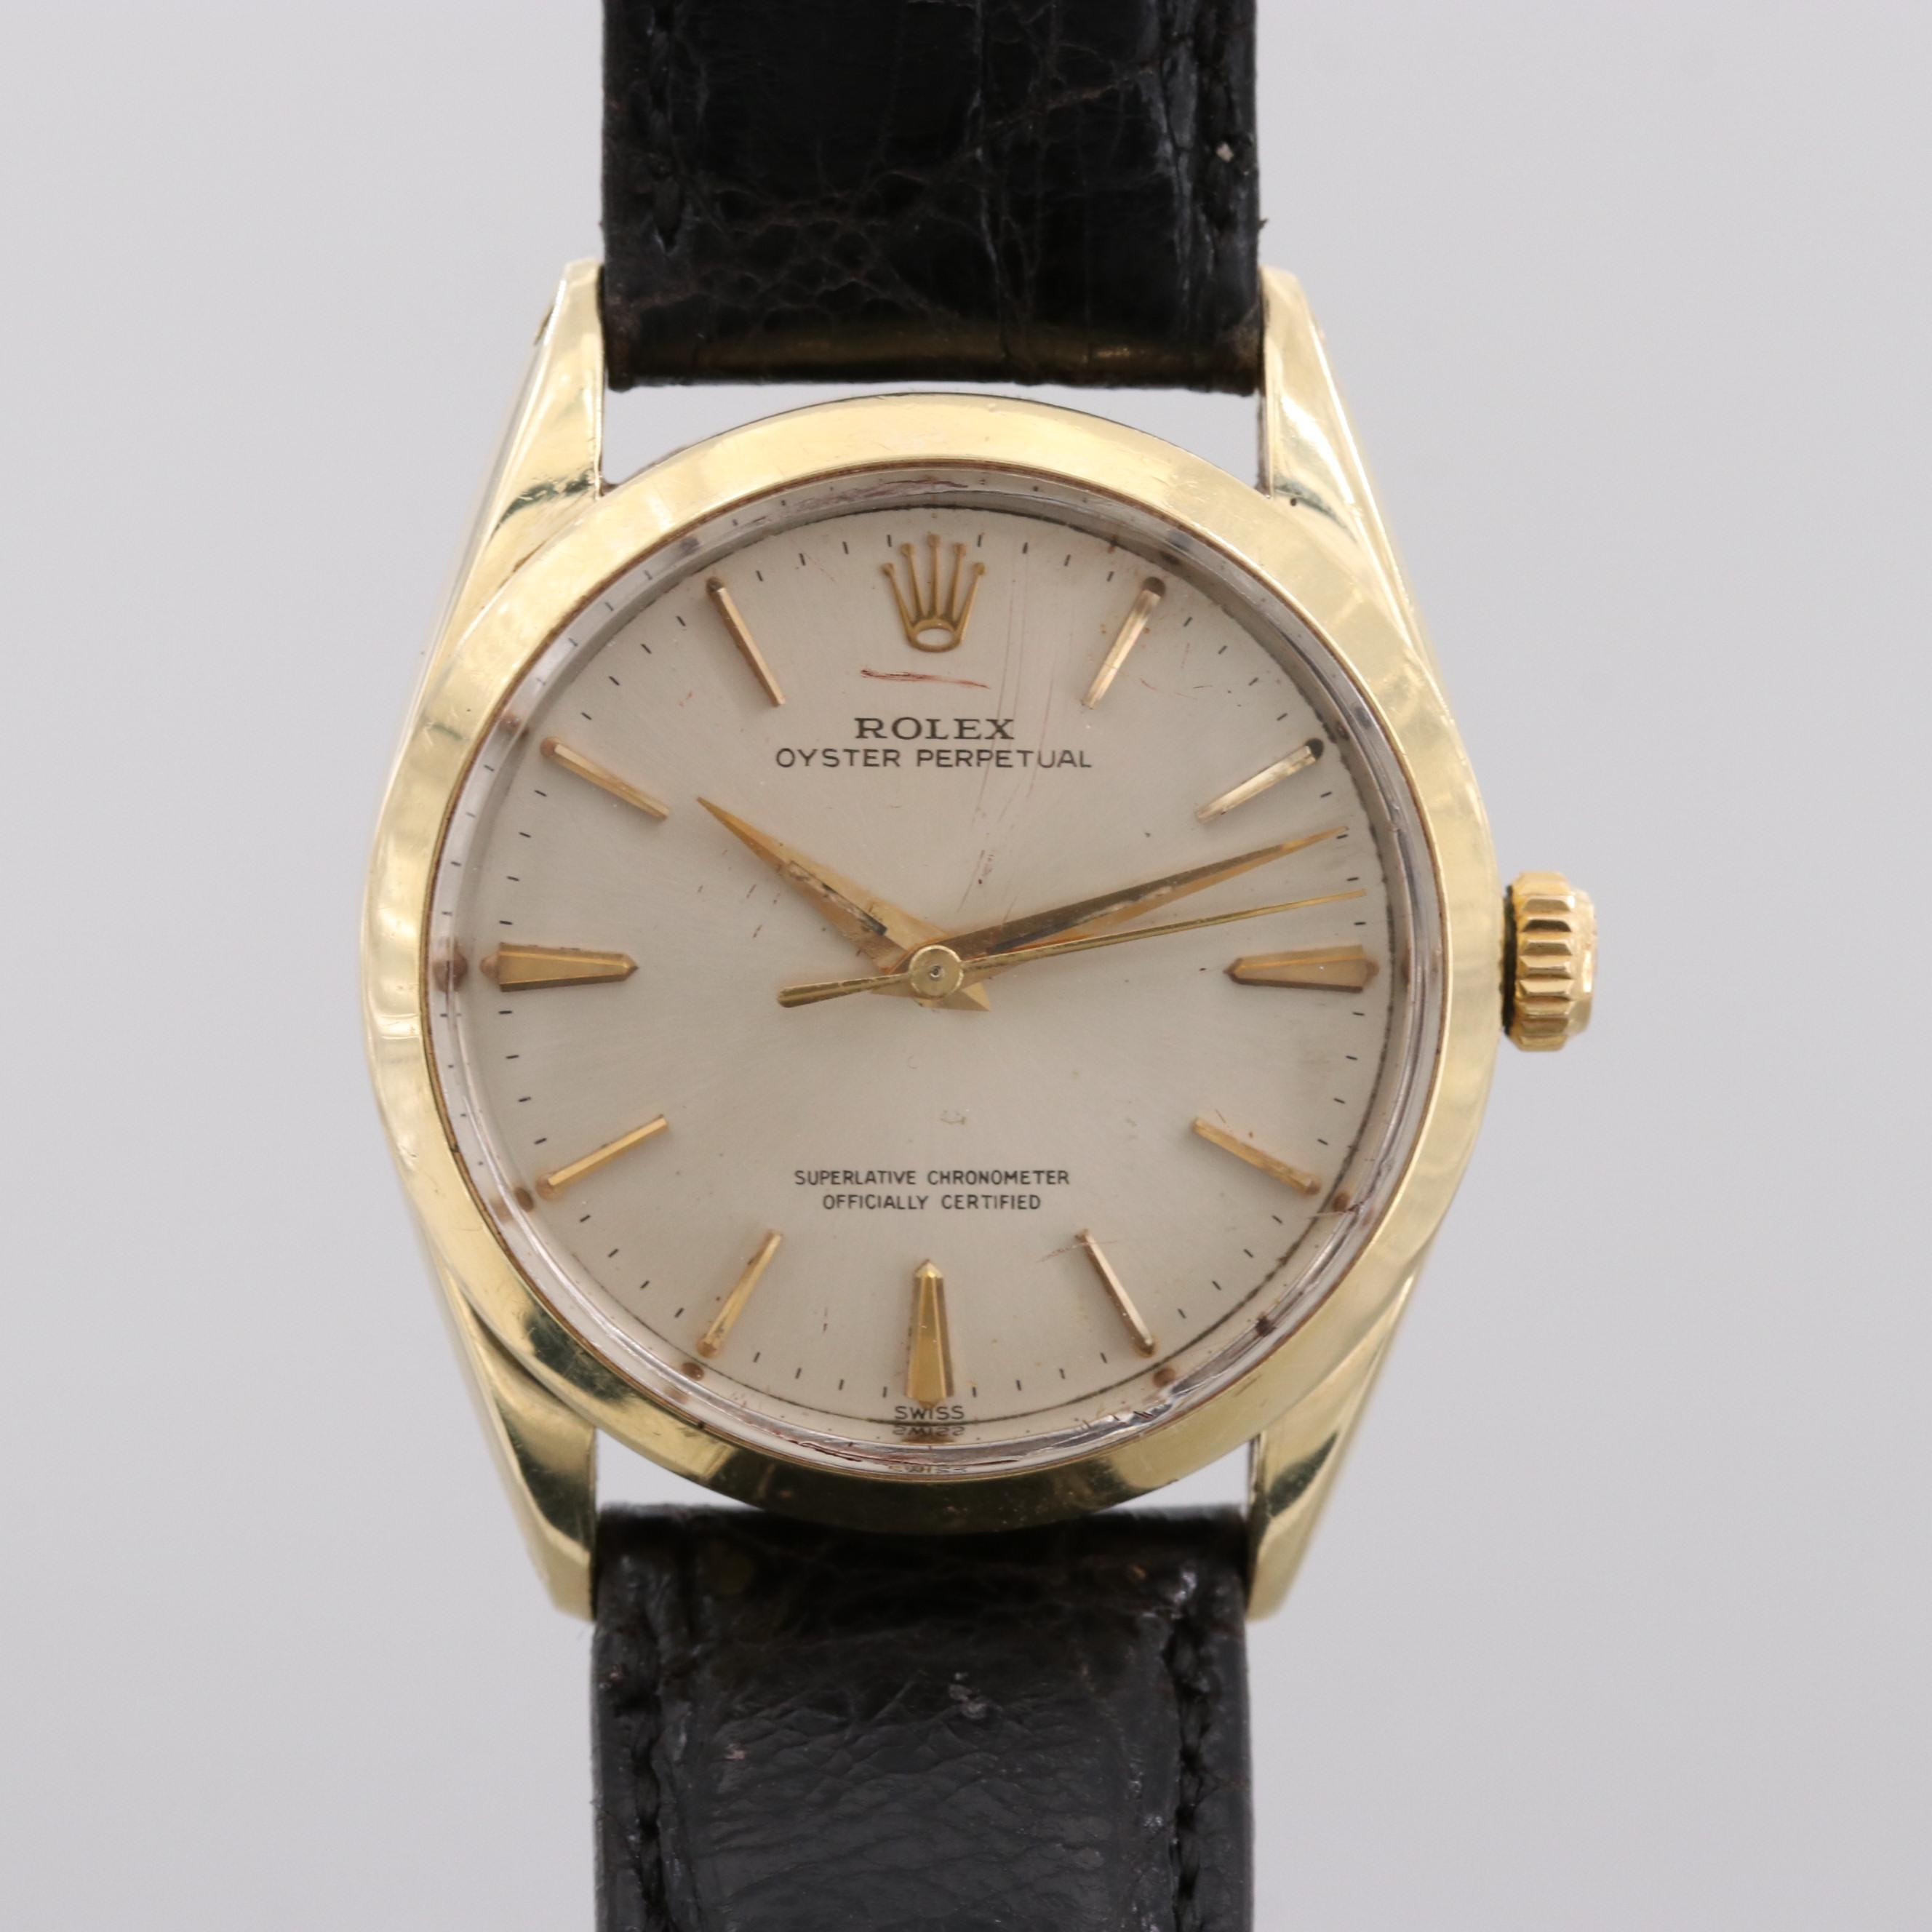 Rolex Oyster Perpetual Gold Shell Stainless Steel Automatic Wristwatch, 1961